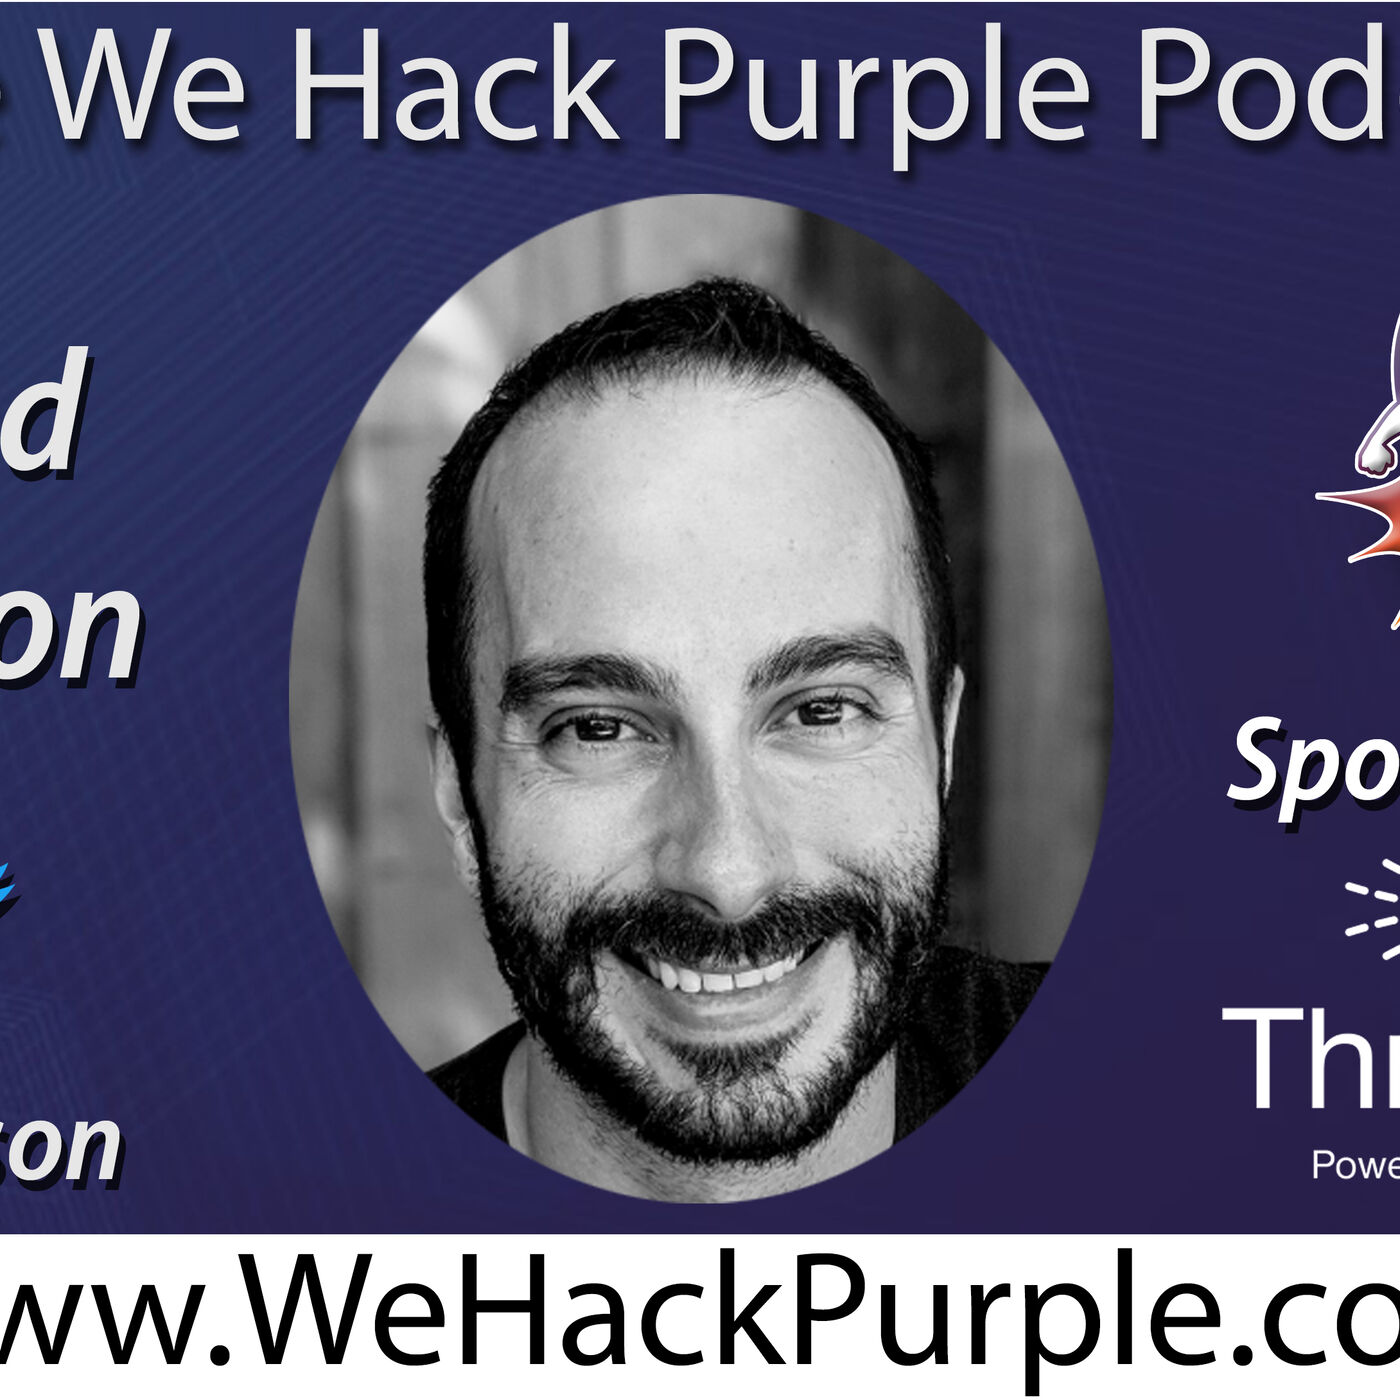 We Hack Purple Podcast Episode 28 with Guest Jarrod Overson